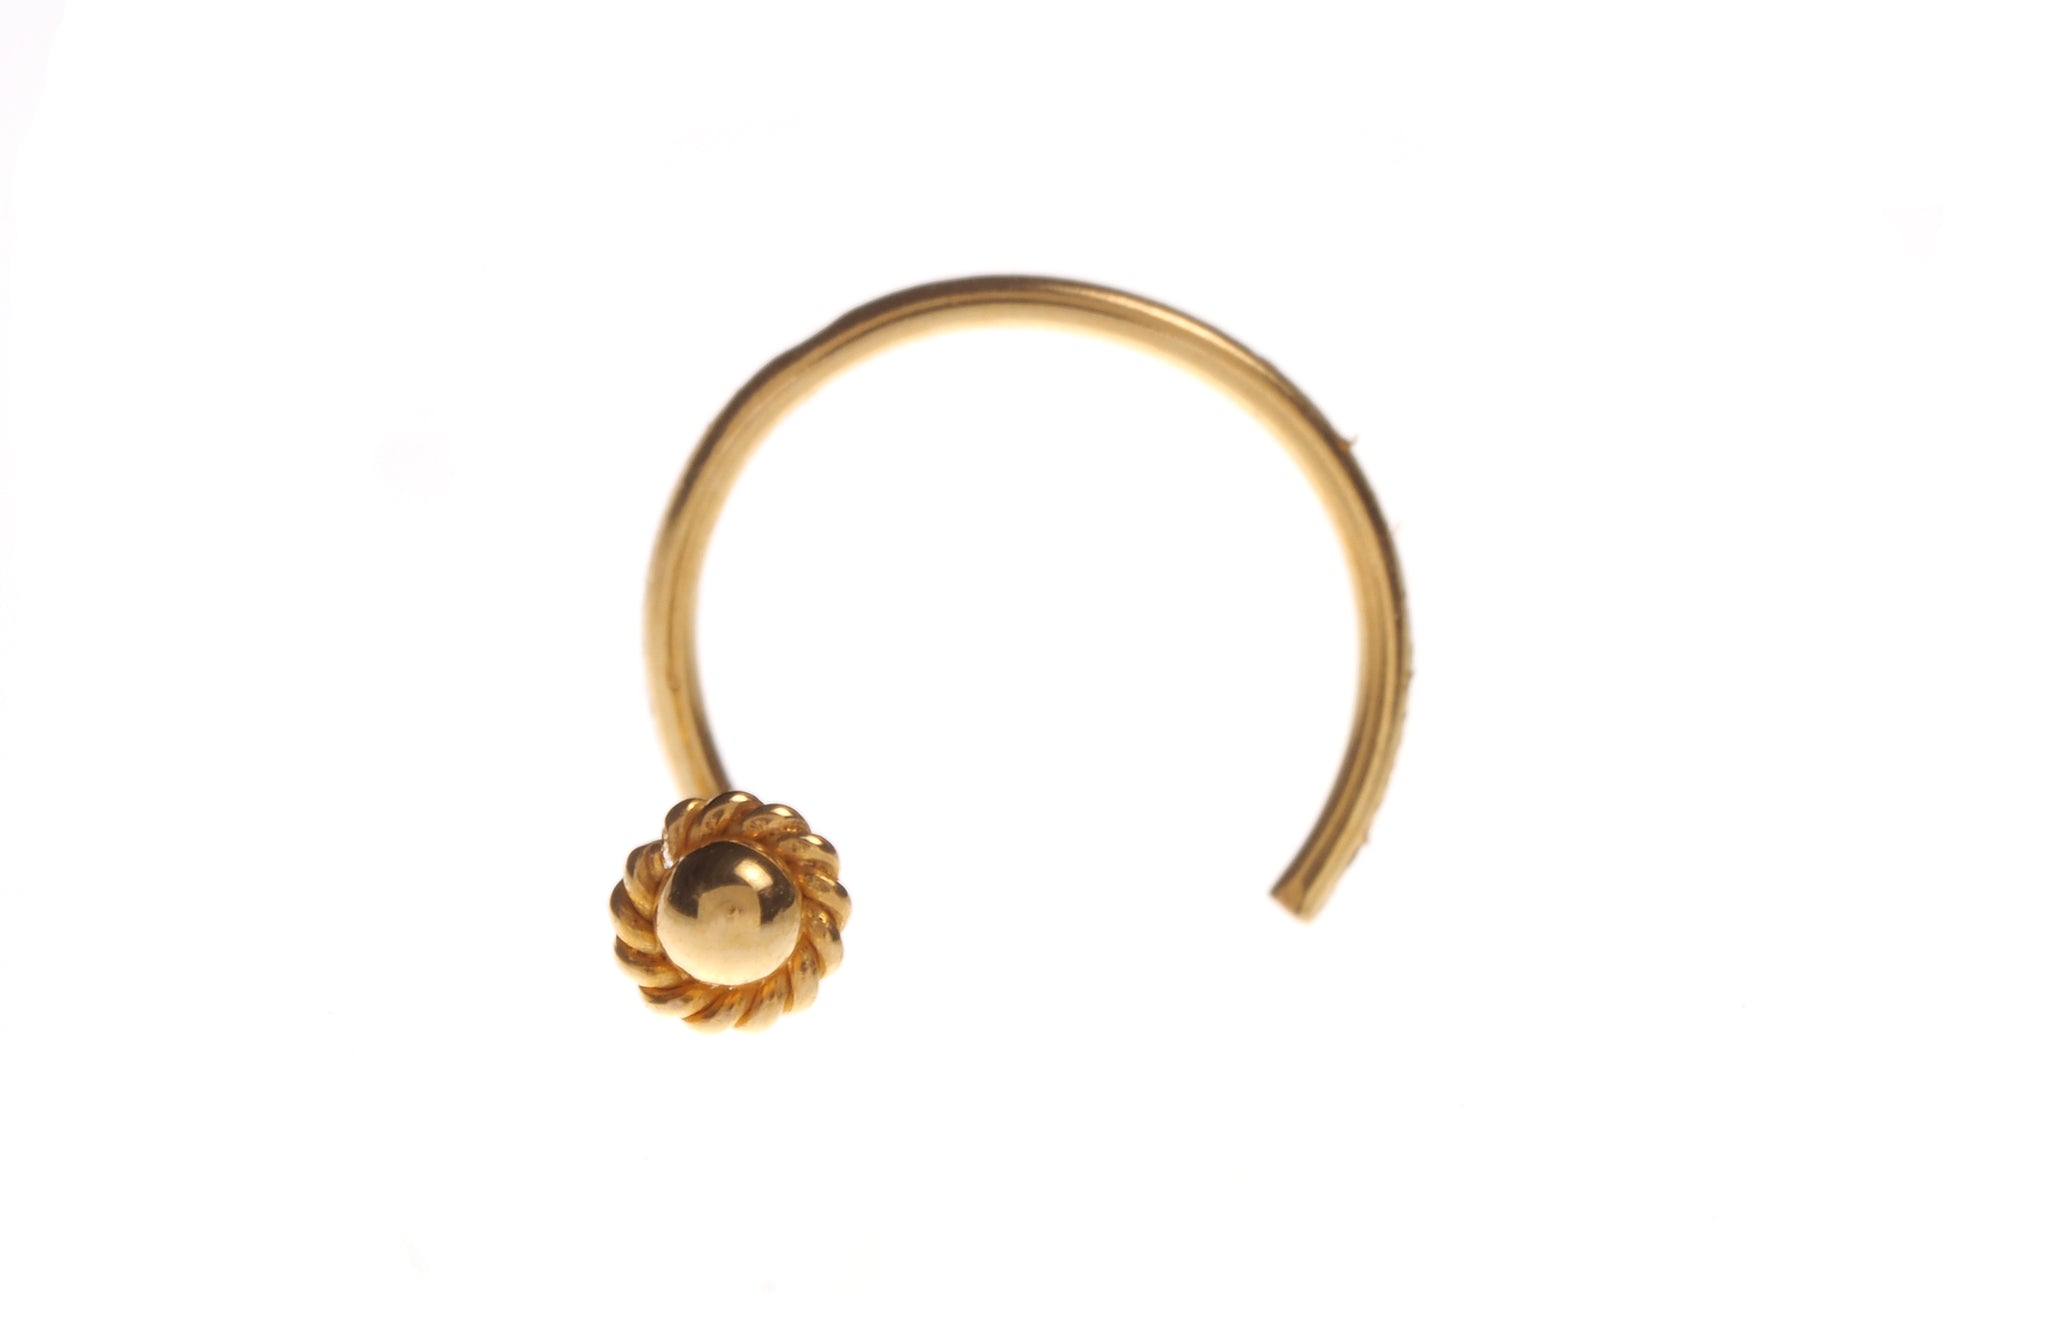 18ct Gold Nose Stud Wire Coil Back NS-4693